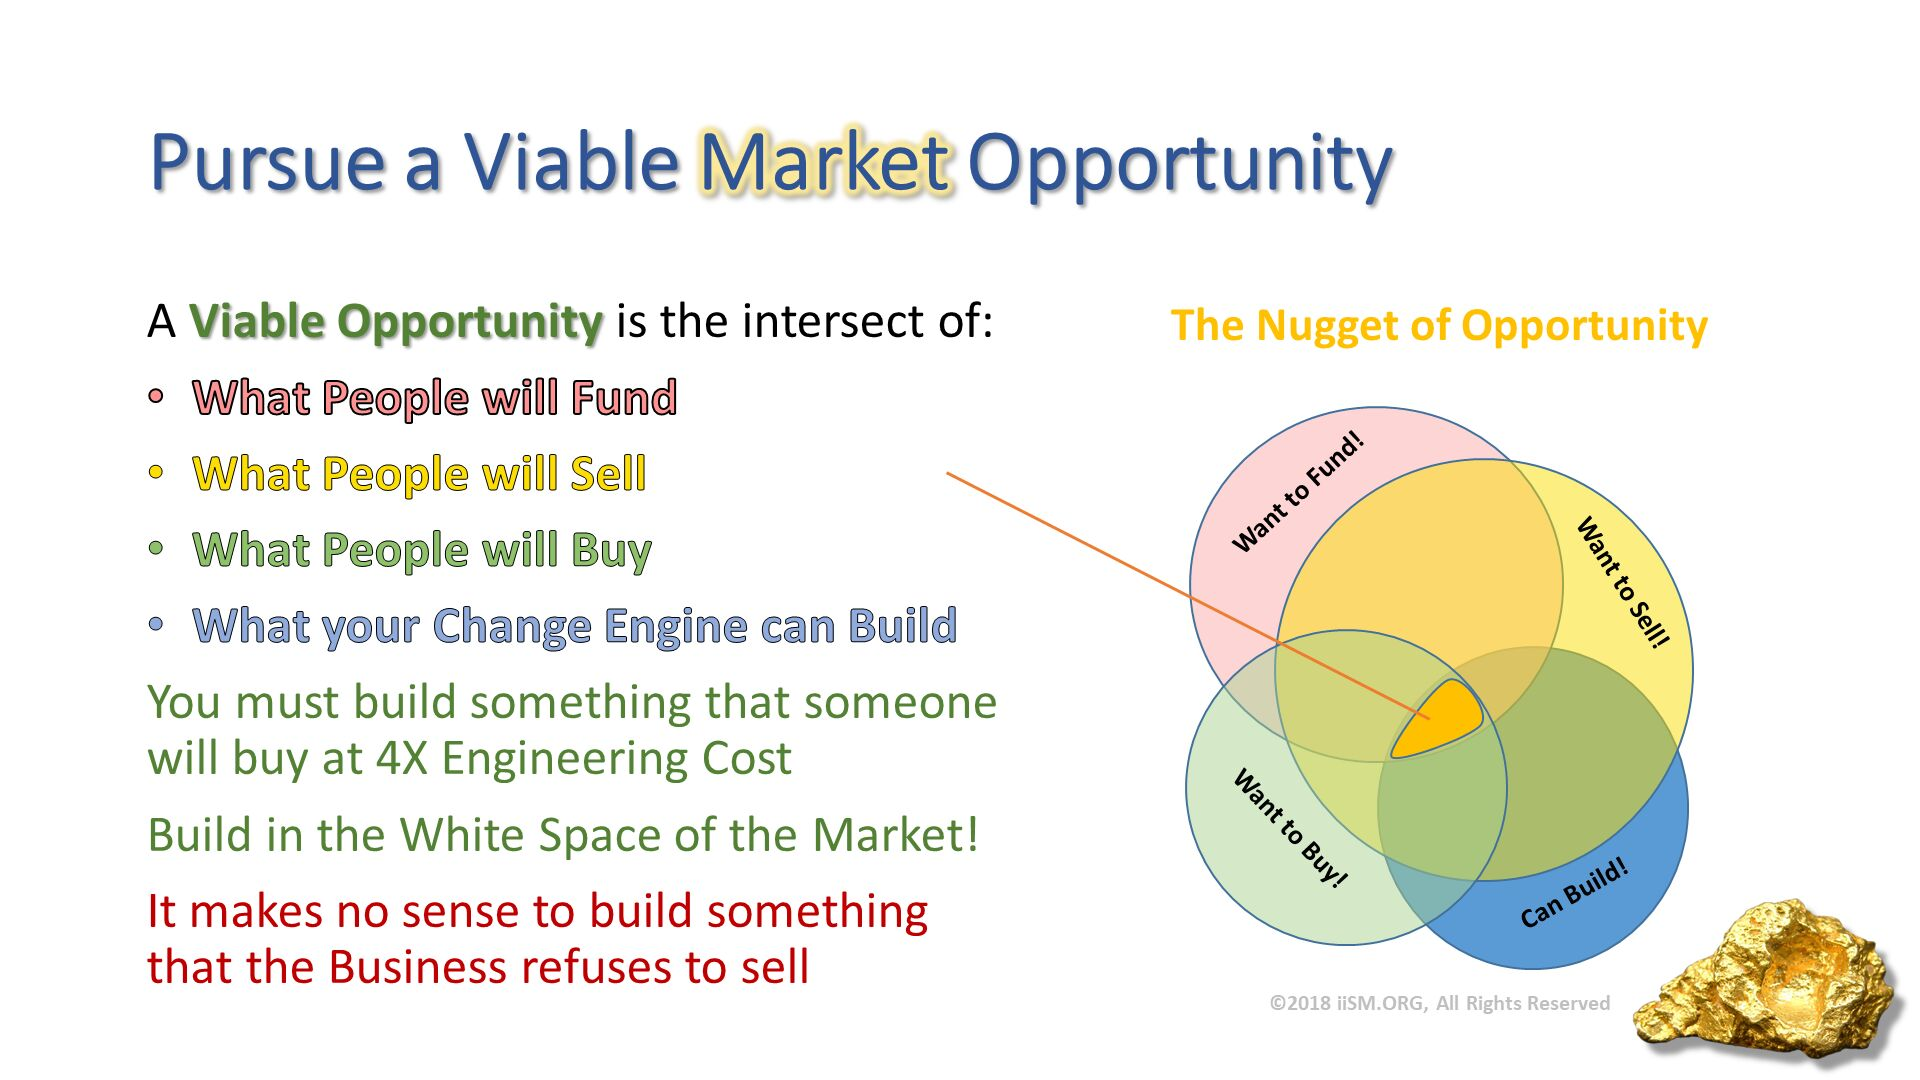 Pursue a Viable Market Opportunity. A Viable Opportunity is the intersect of: What People will Fund What People will Sell What People will Buy What your Change Engine can Build You must build something that someone will buy at 4X Engineering Cost Build in the White Space of the Market! It makes no sense to build something that the Business refuses to sell .